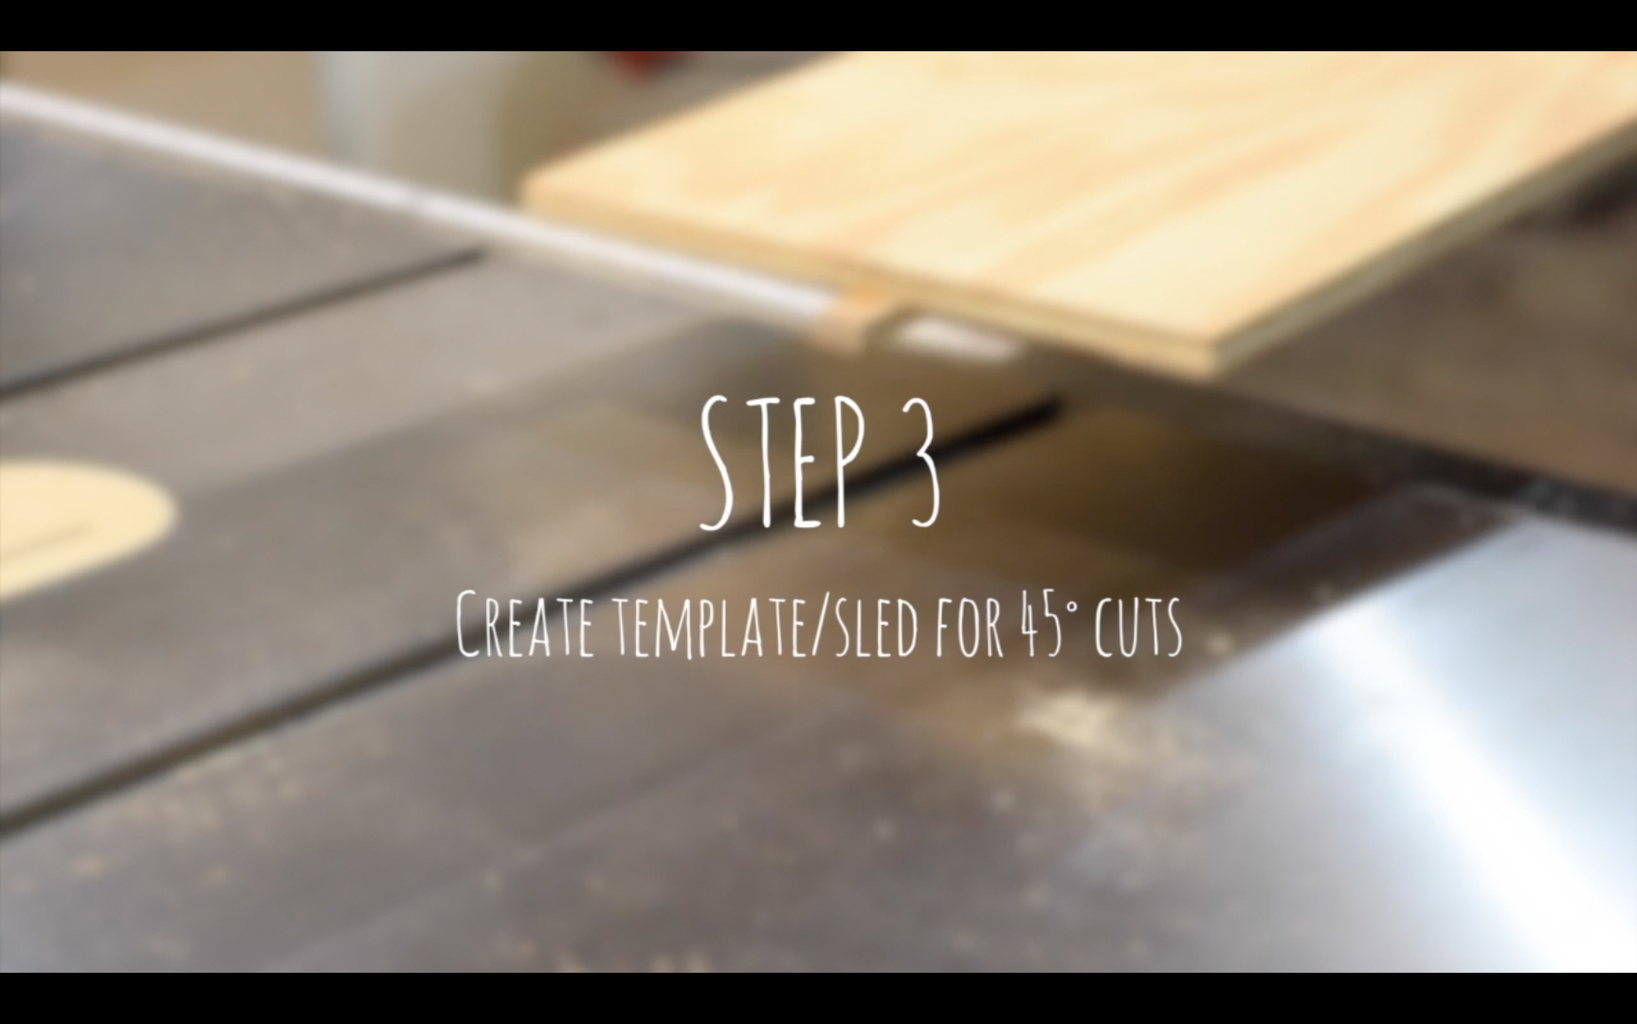 Creating a Template/sled for 45˚ Cuts